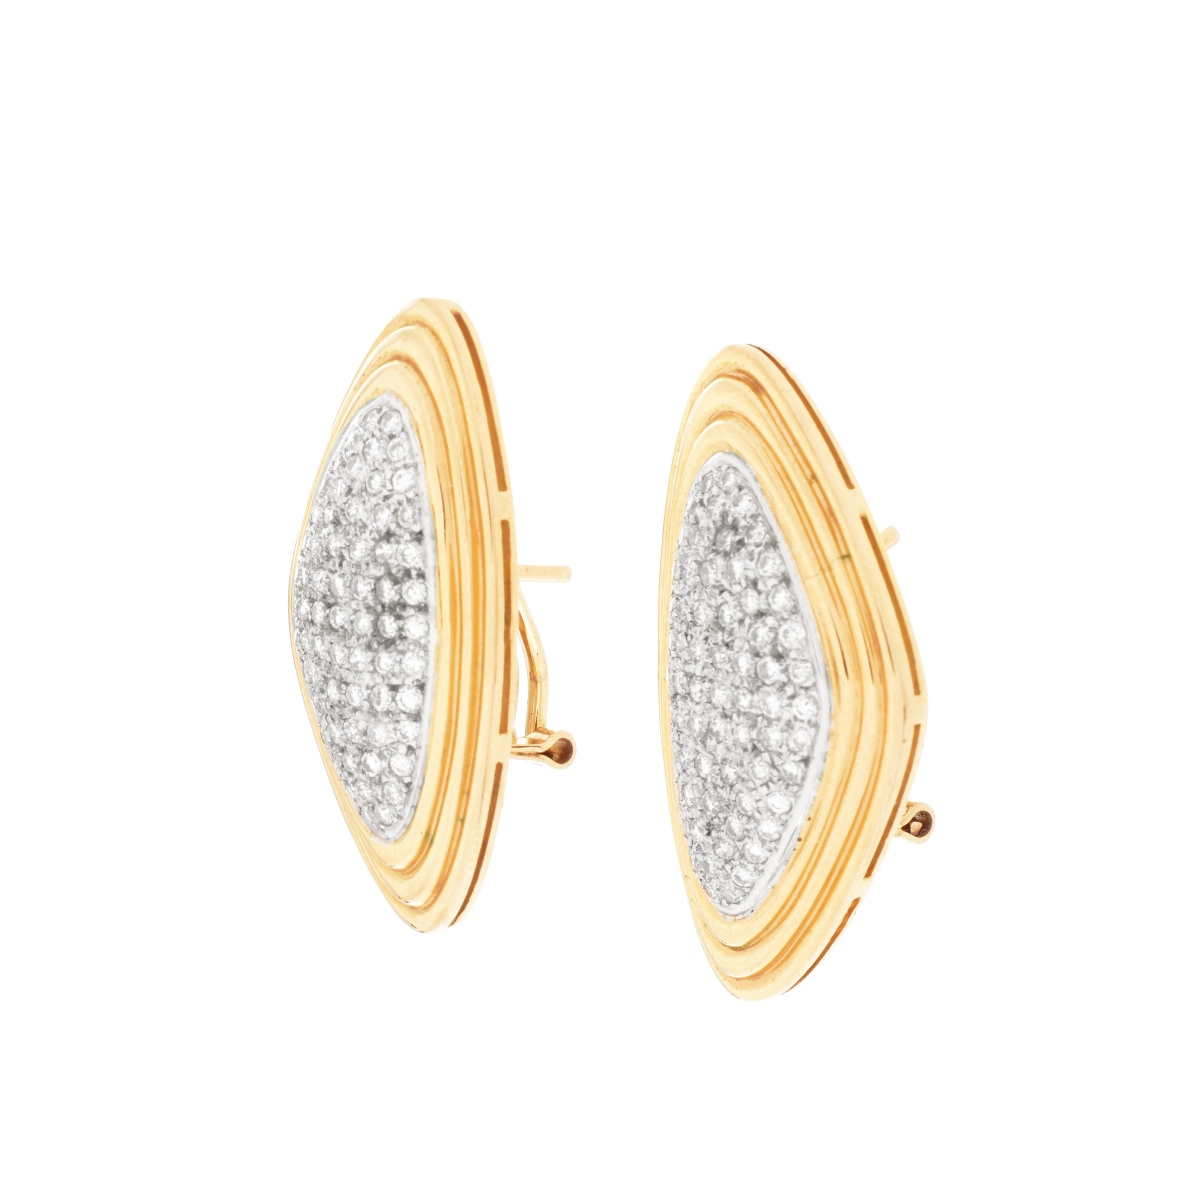 Georg Jensen Diamond and 14K Earrings